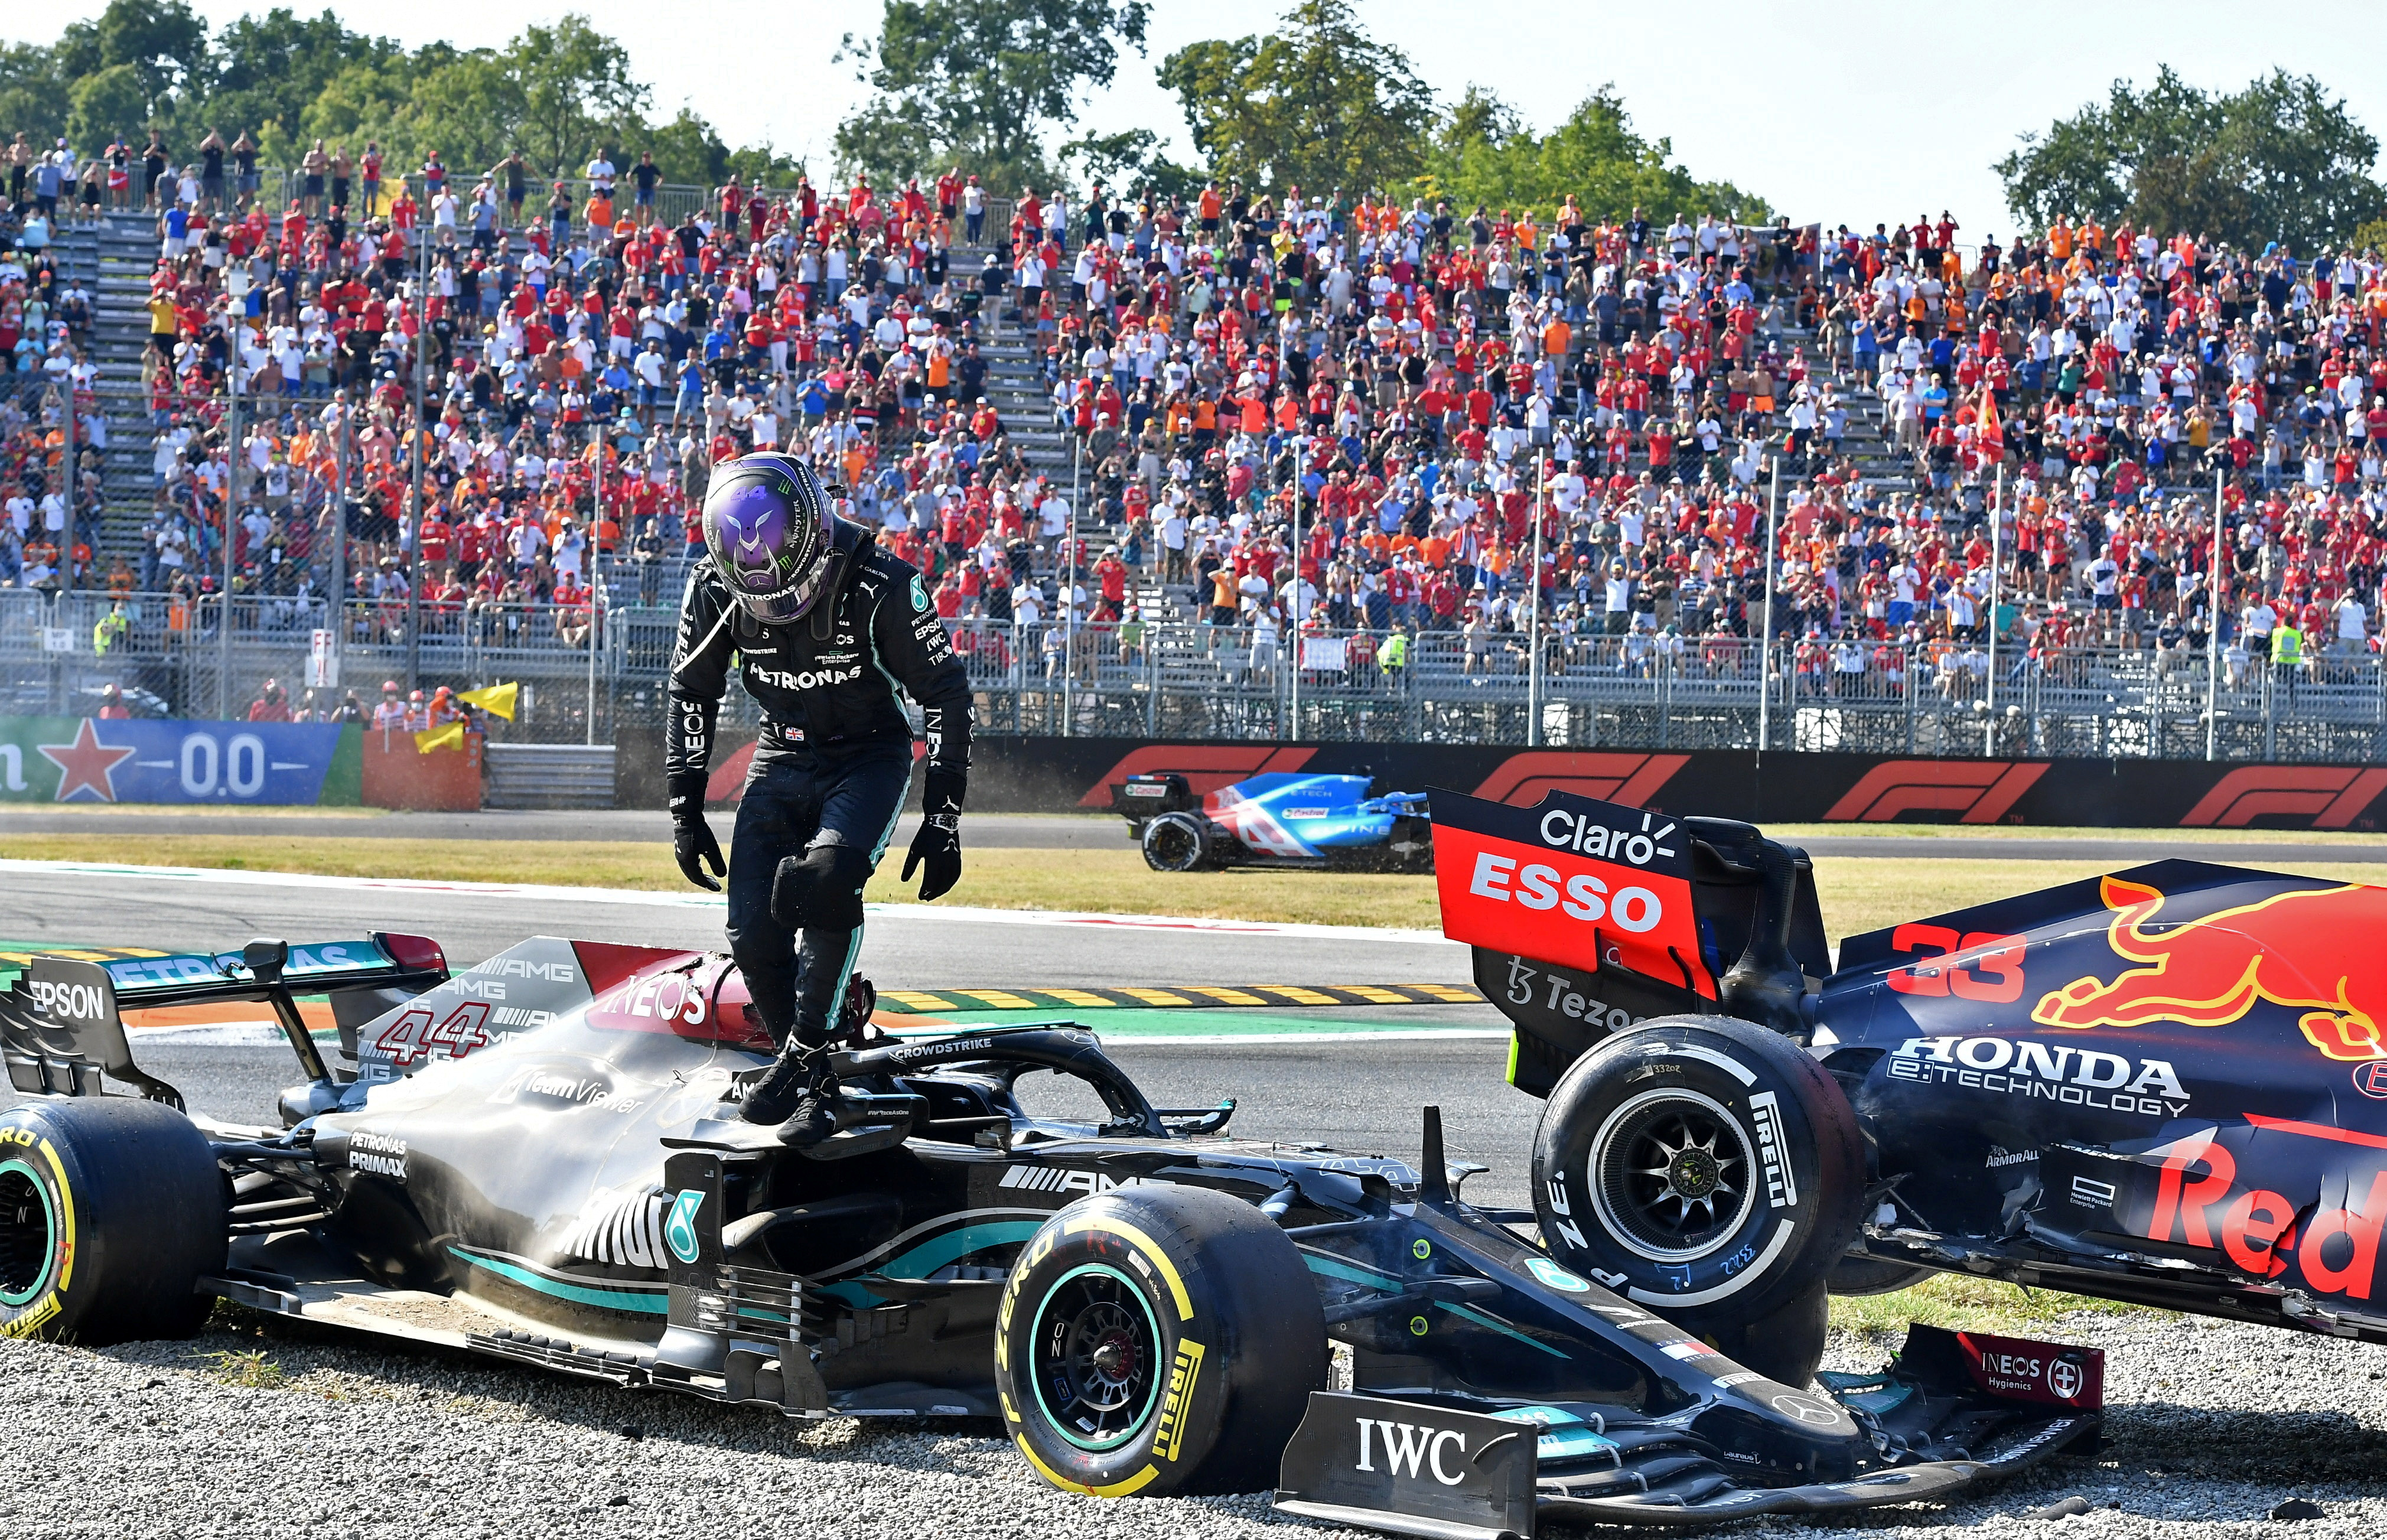 Formula One F1 - Italian Grand Prix - Autodromo Nazionale Monza, Monza, Italy - September 12, 2021 Mercedes' Lewis Hamilton after crashing out of the race with Red Bull's Max Verstappen REUTERS/Jennifer Lorenzini/File photo